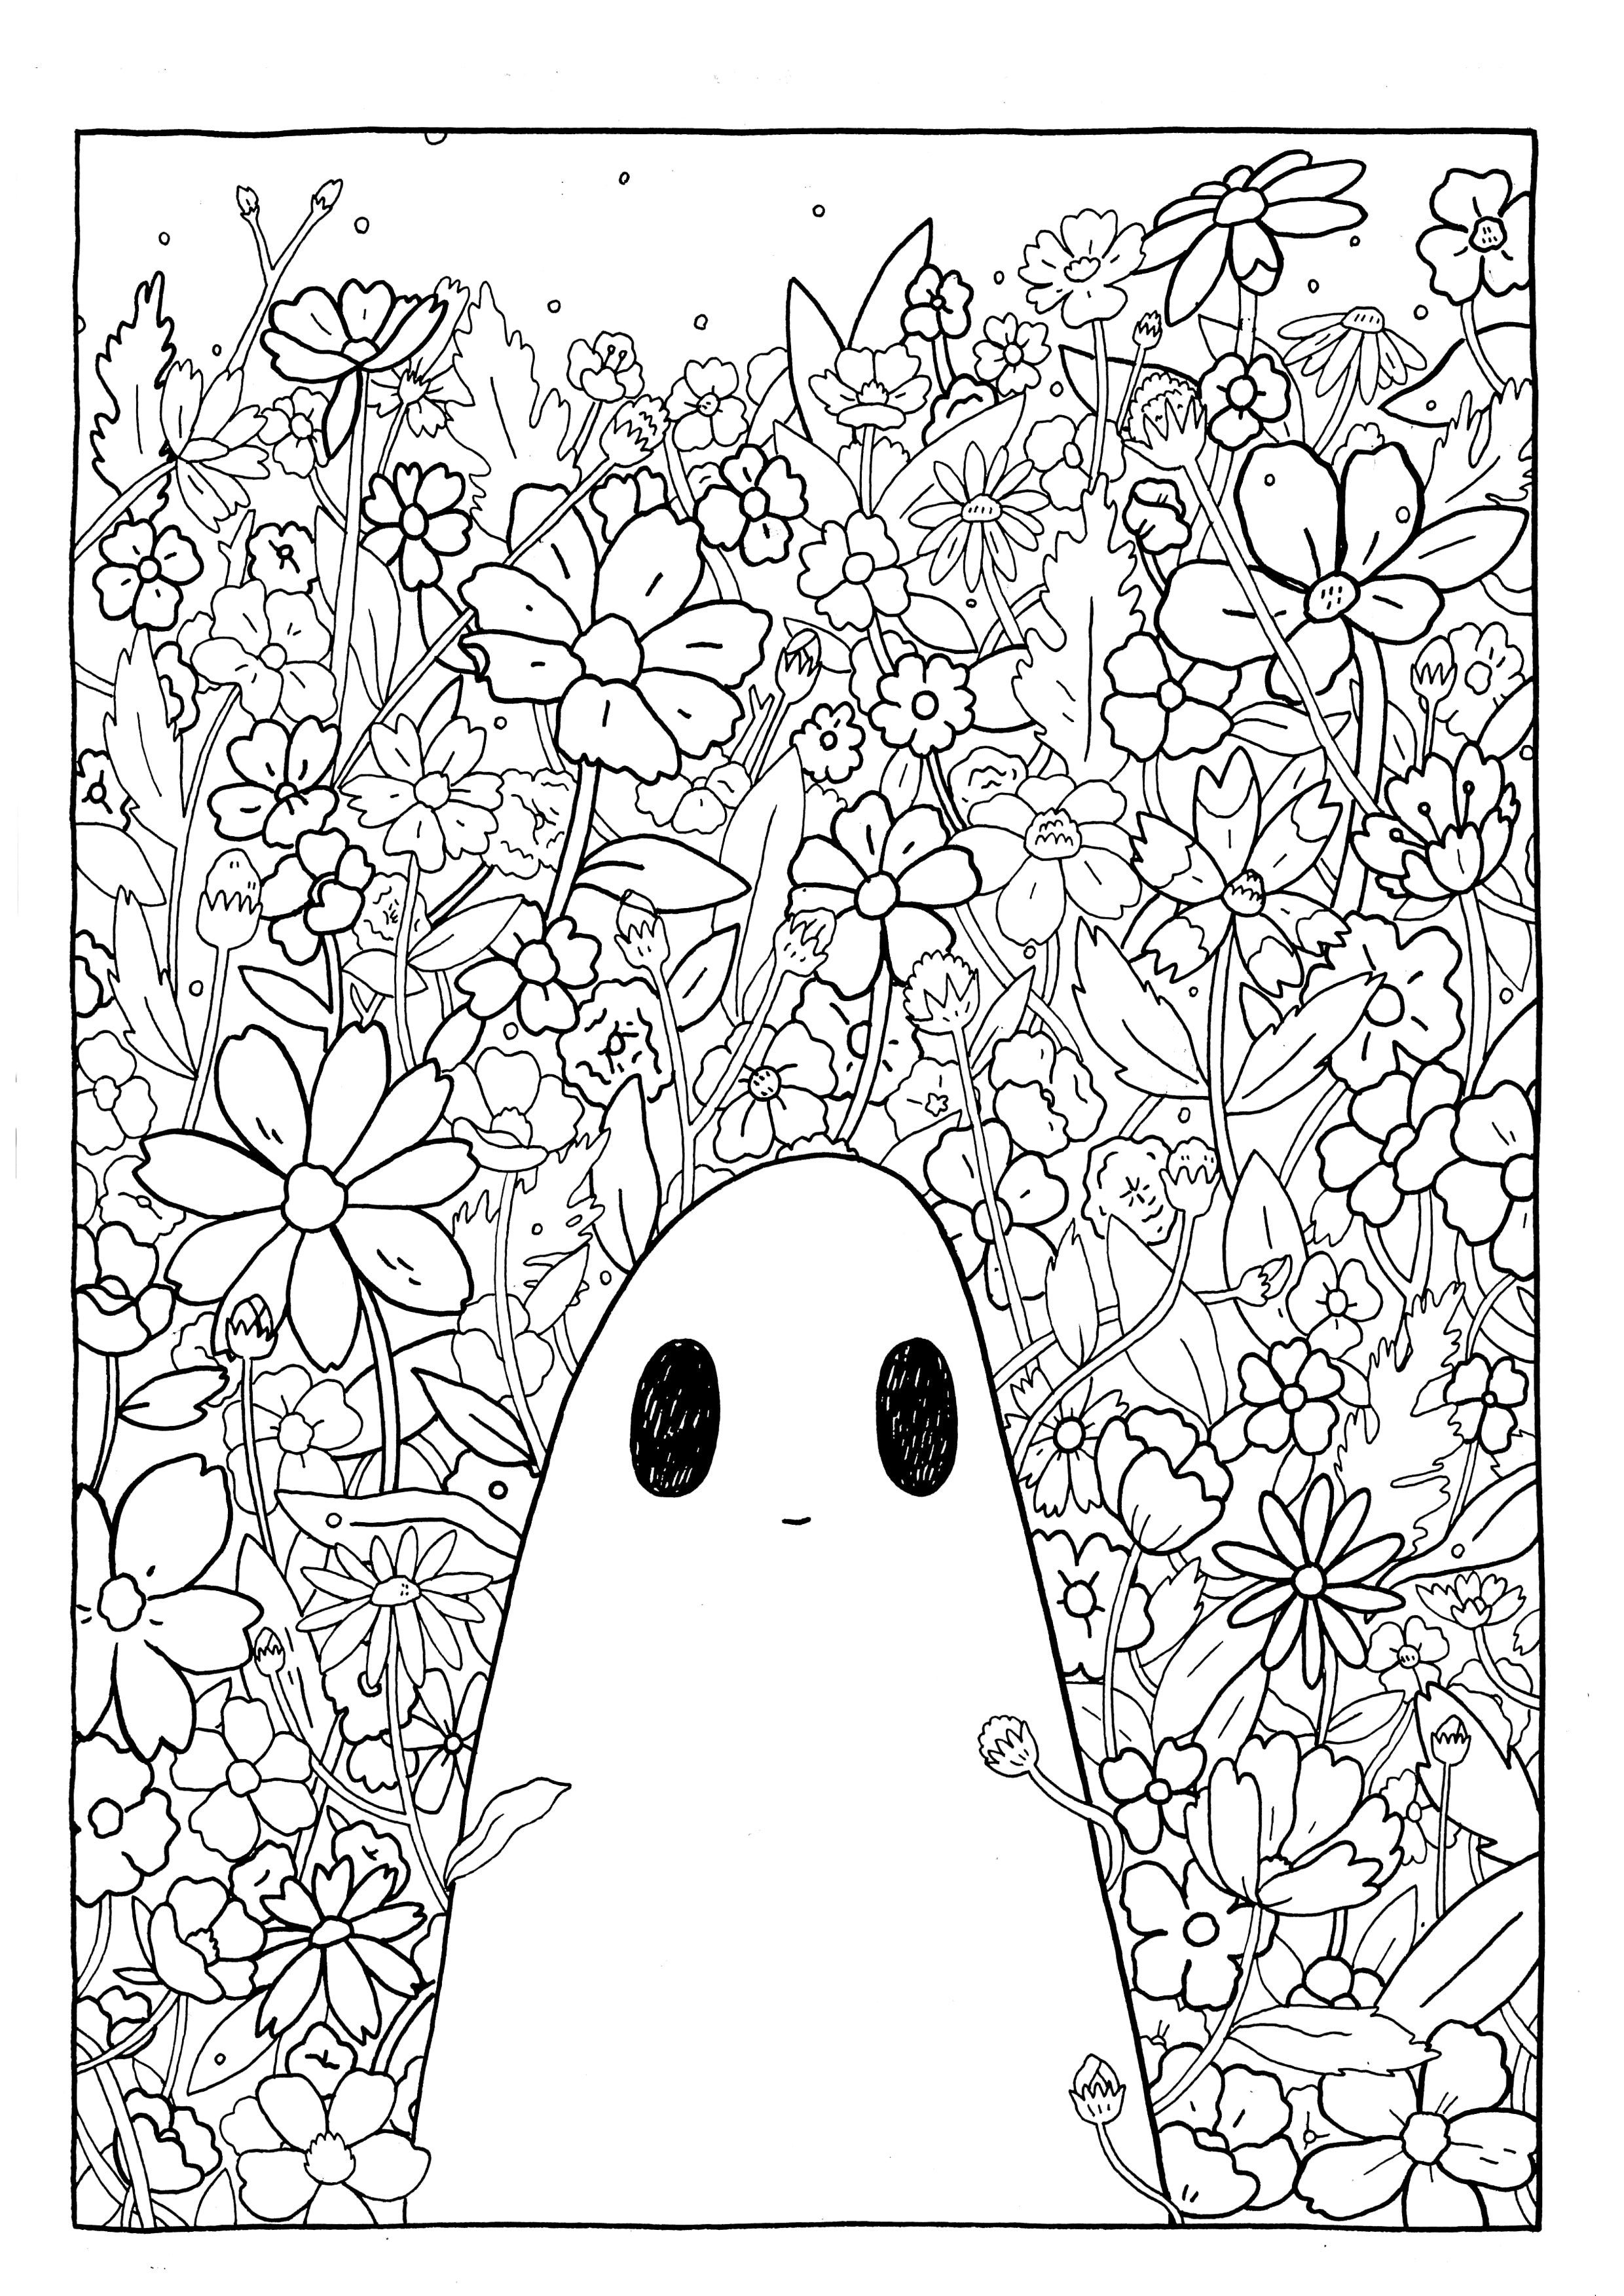 Sgc Colouring Pages The Sad Ghost Club